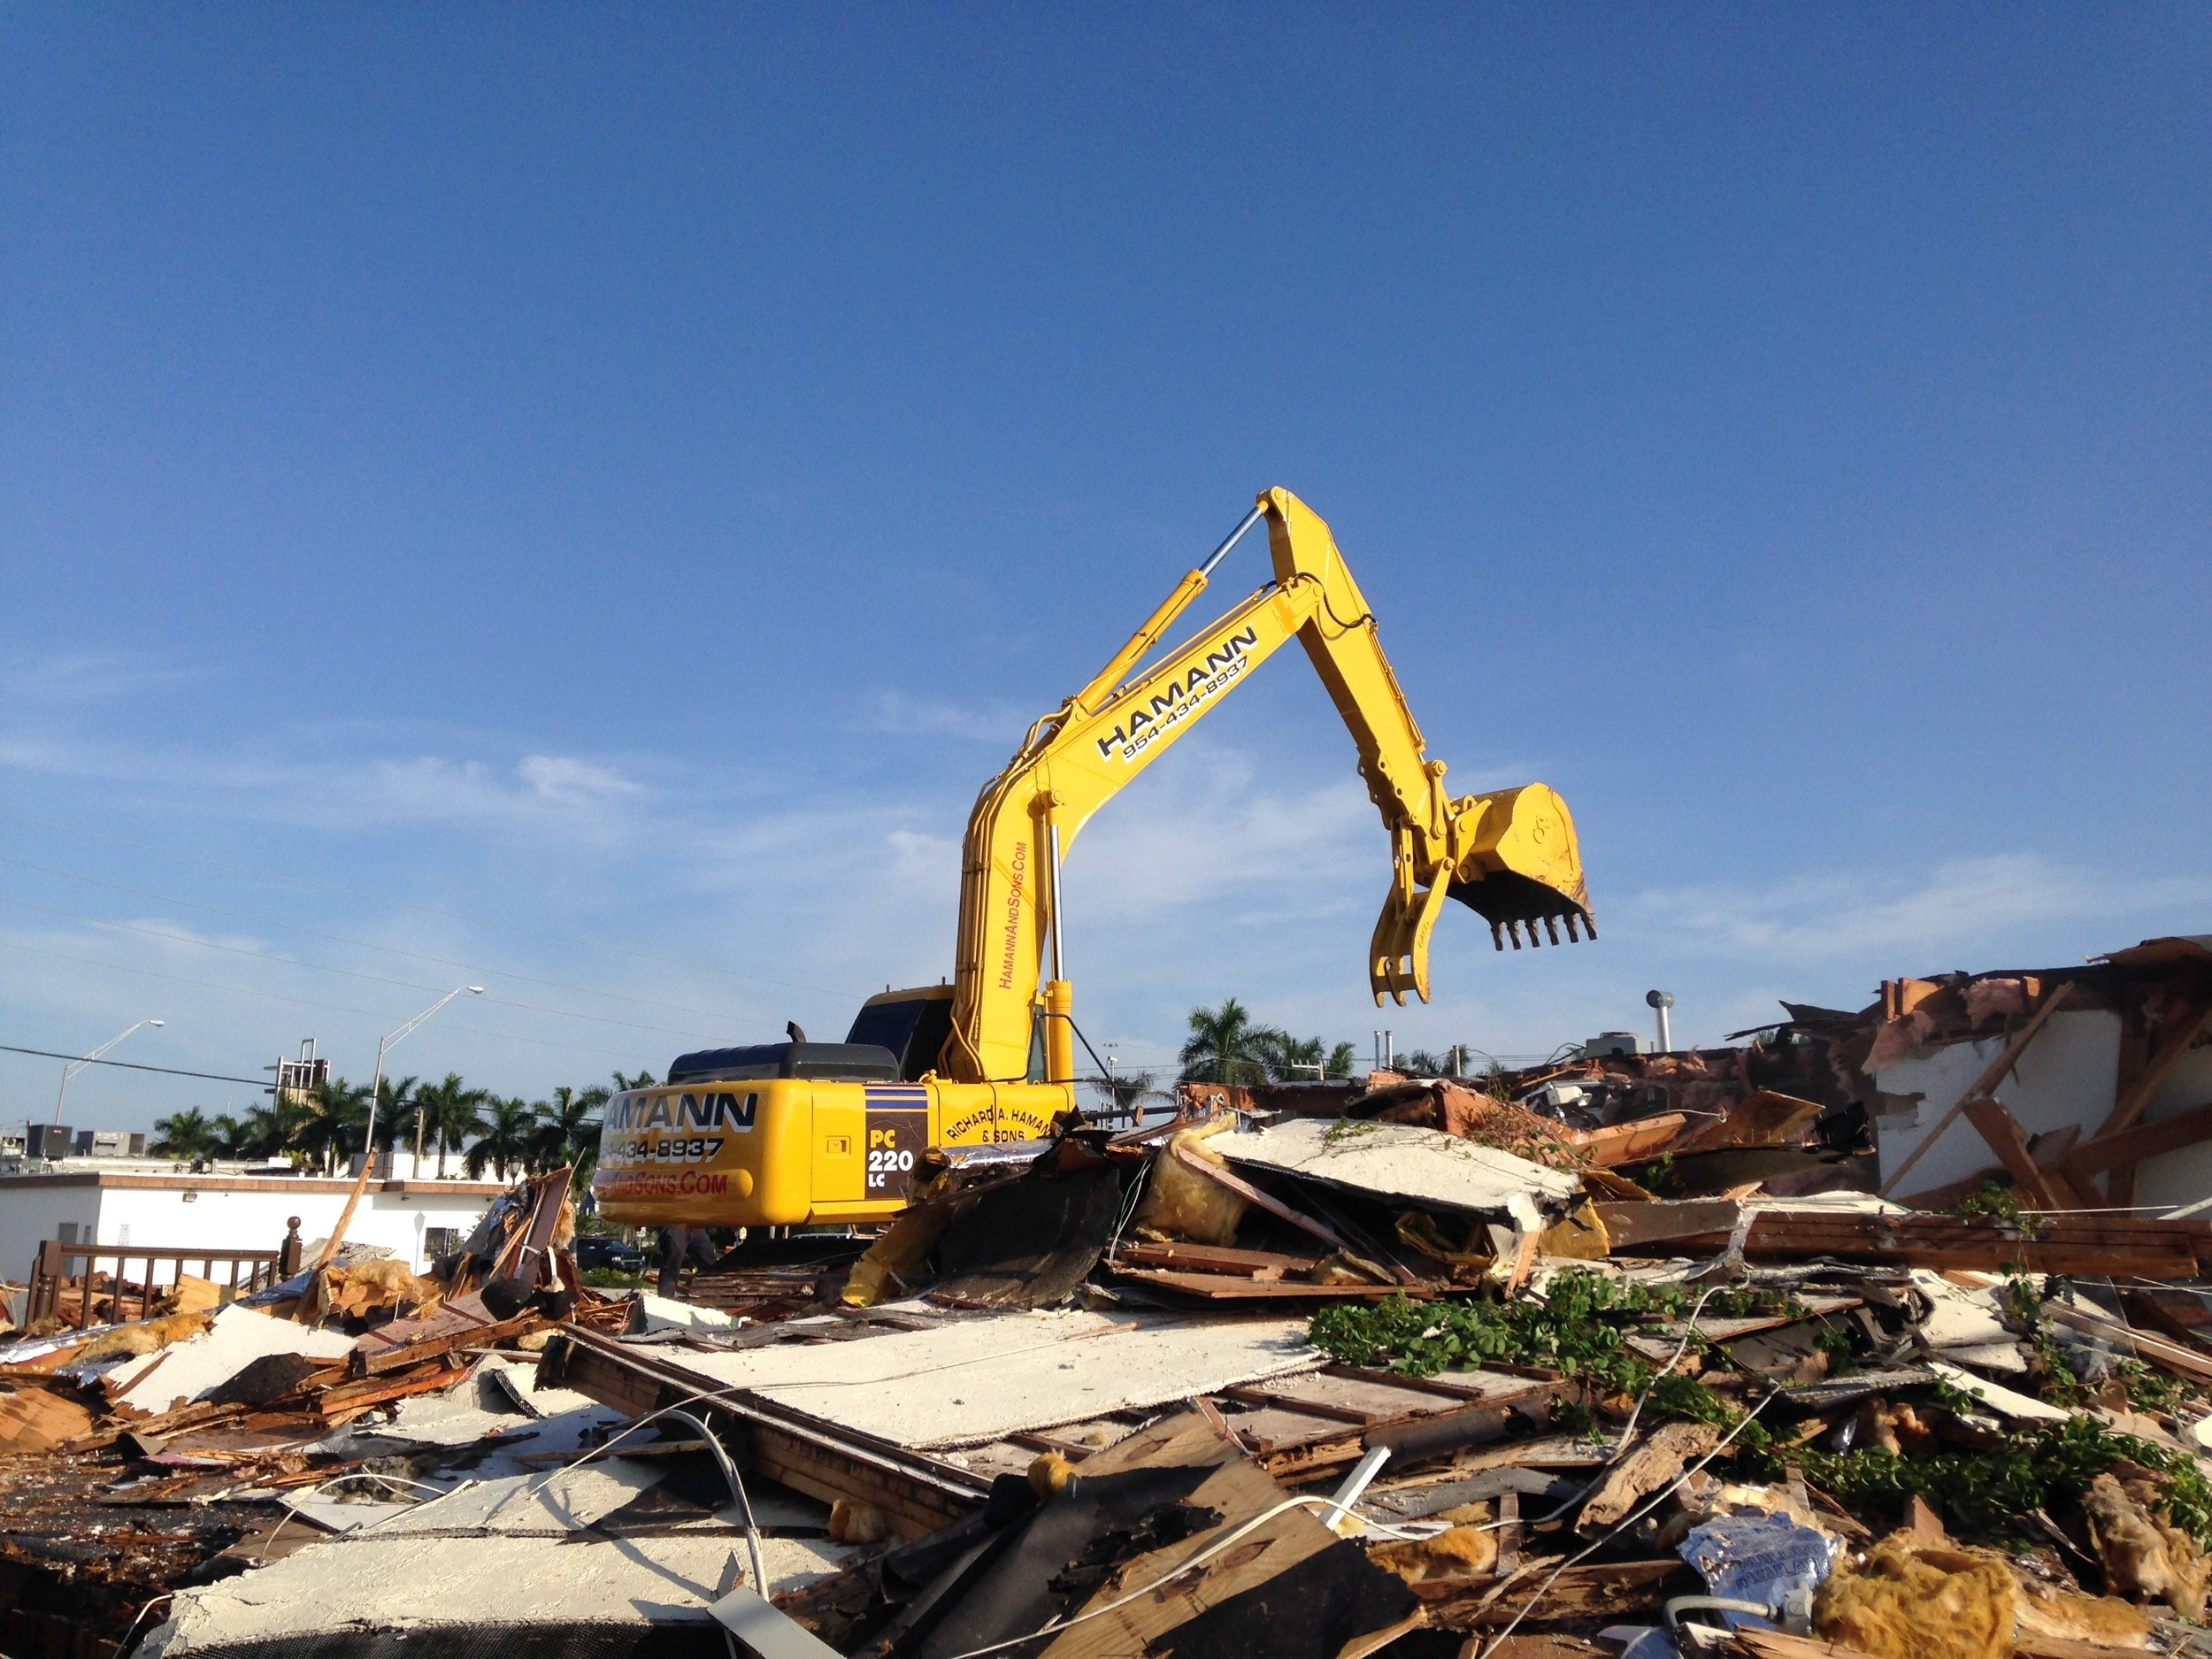 Our family business is Demolition